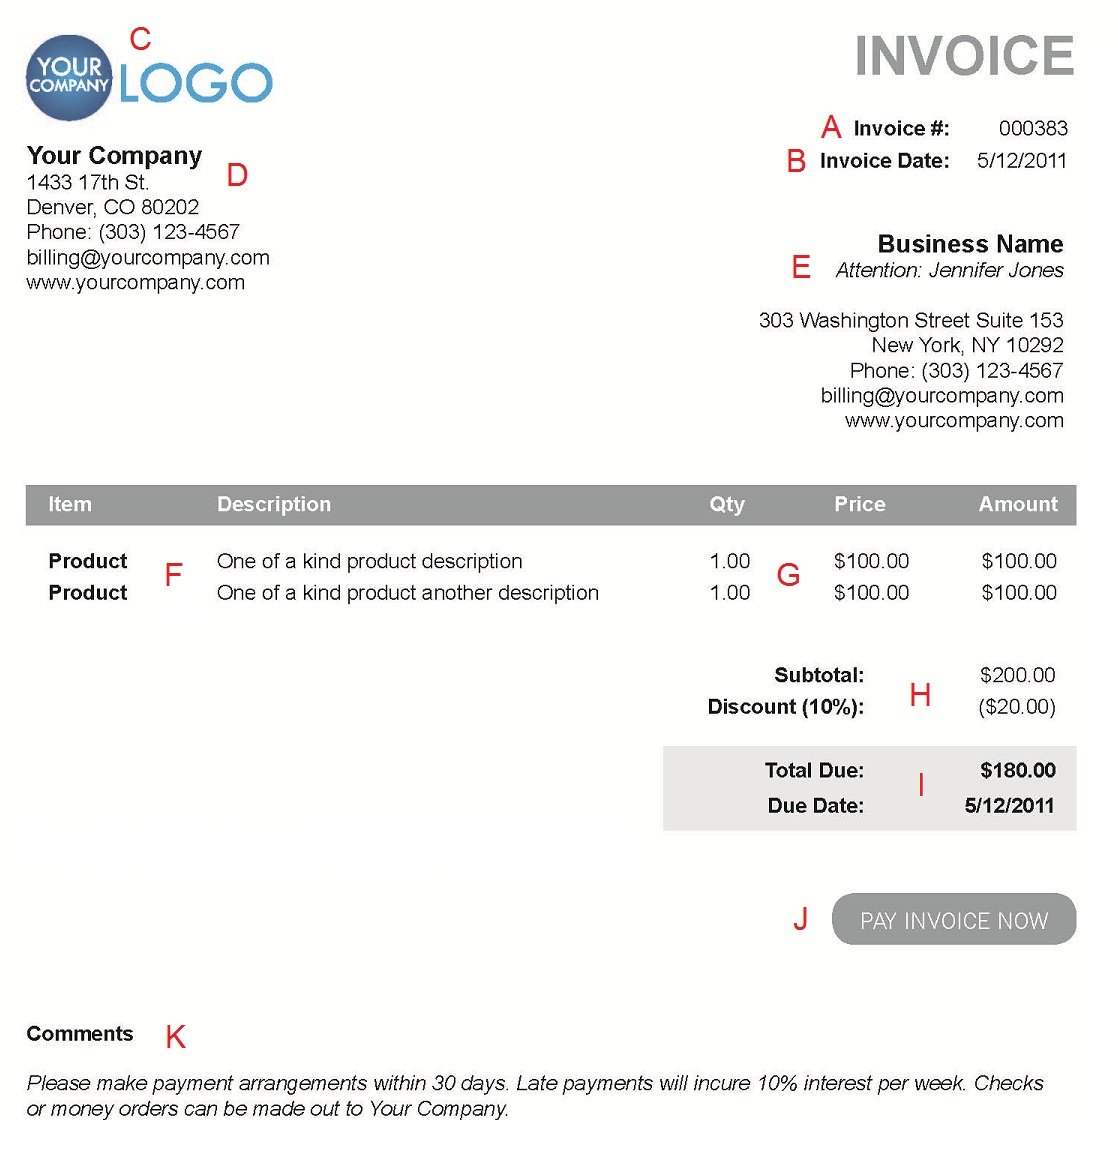 Centralasianshepherdus  Pretty The  Different Sections Of An Electronic Payment Invoice With Glamorous A  With Divine Excel  Invoice Template Free Download Also Foc Invoice In Addition What Is Sales Invoice In Accounting And Examples Of Invoice Templates As Well As Actual Invoice Additionally Sme Invoice Finance From Paysimplecom With Centralasianshepherdus  Glamorous The  Different Sections Of An Electronic Payment Invoice With Divine A  And Pretty Excel  Invoice Template Free Download Also Foc Invoice In Addition What Is Sales Invoice In Accounting From Paysimplecom